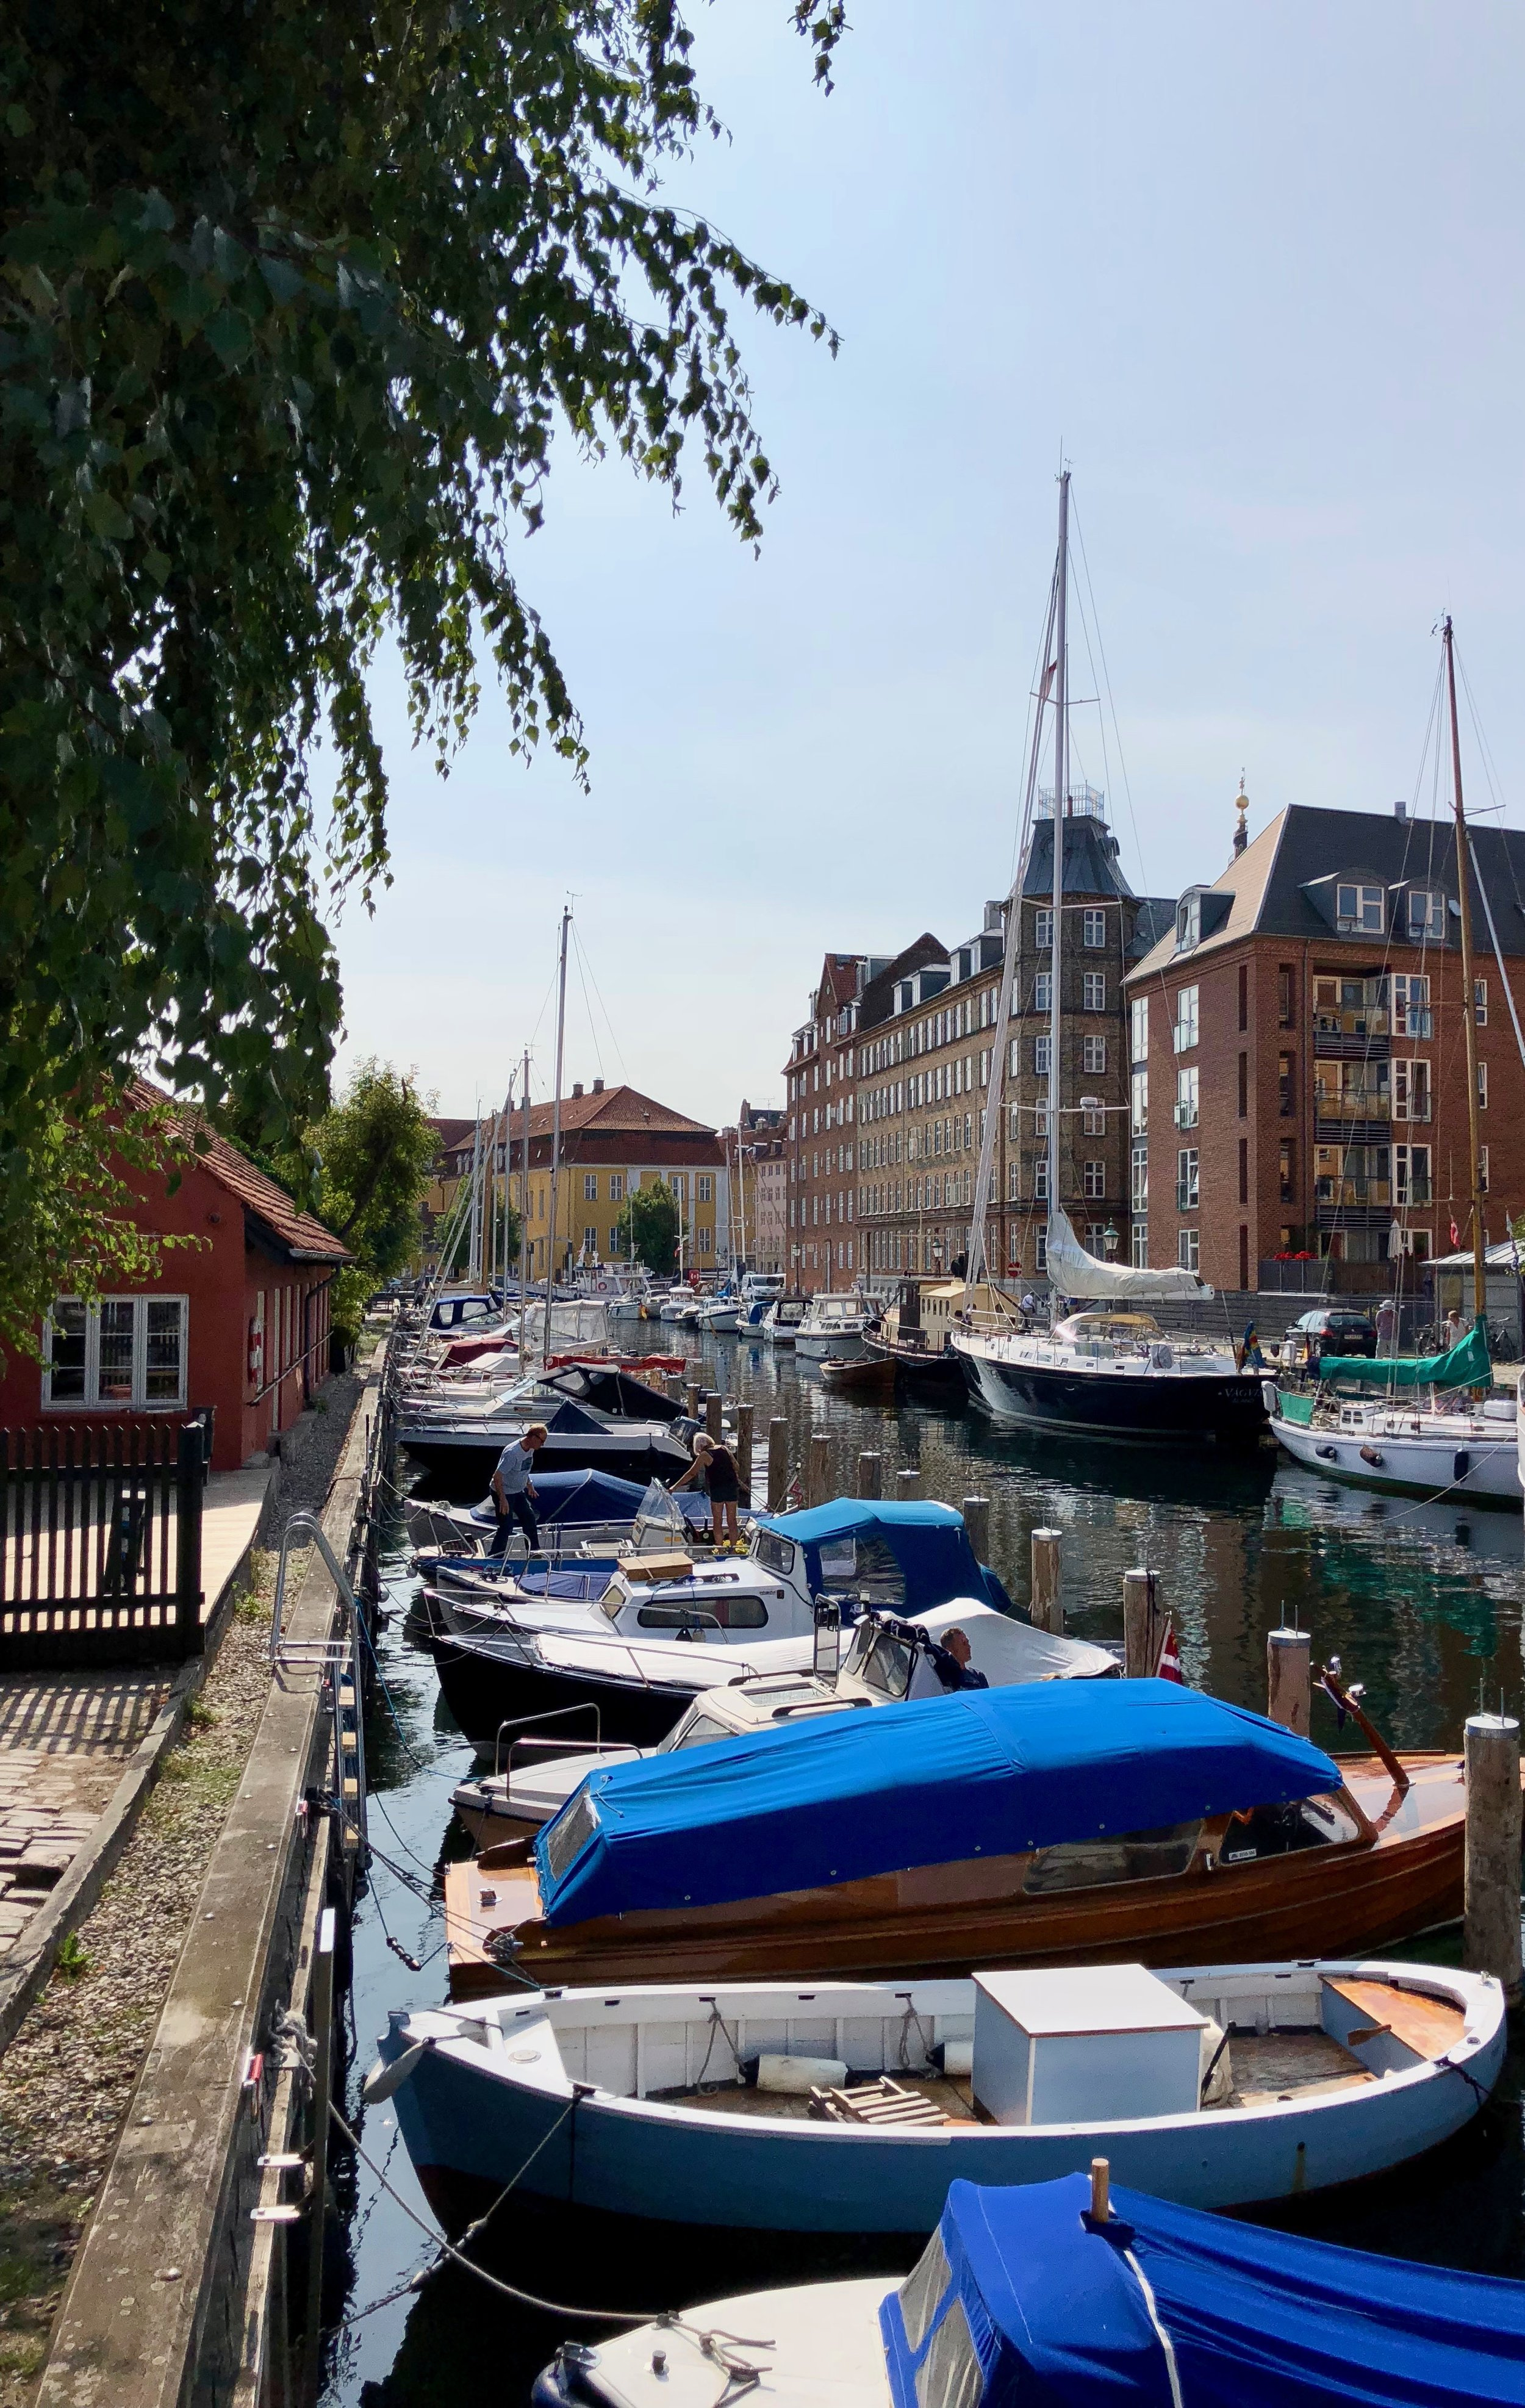 Explore one of the smaller canals